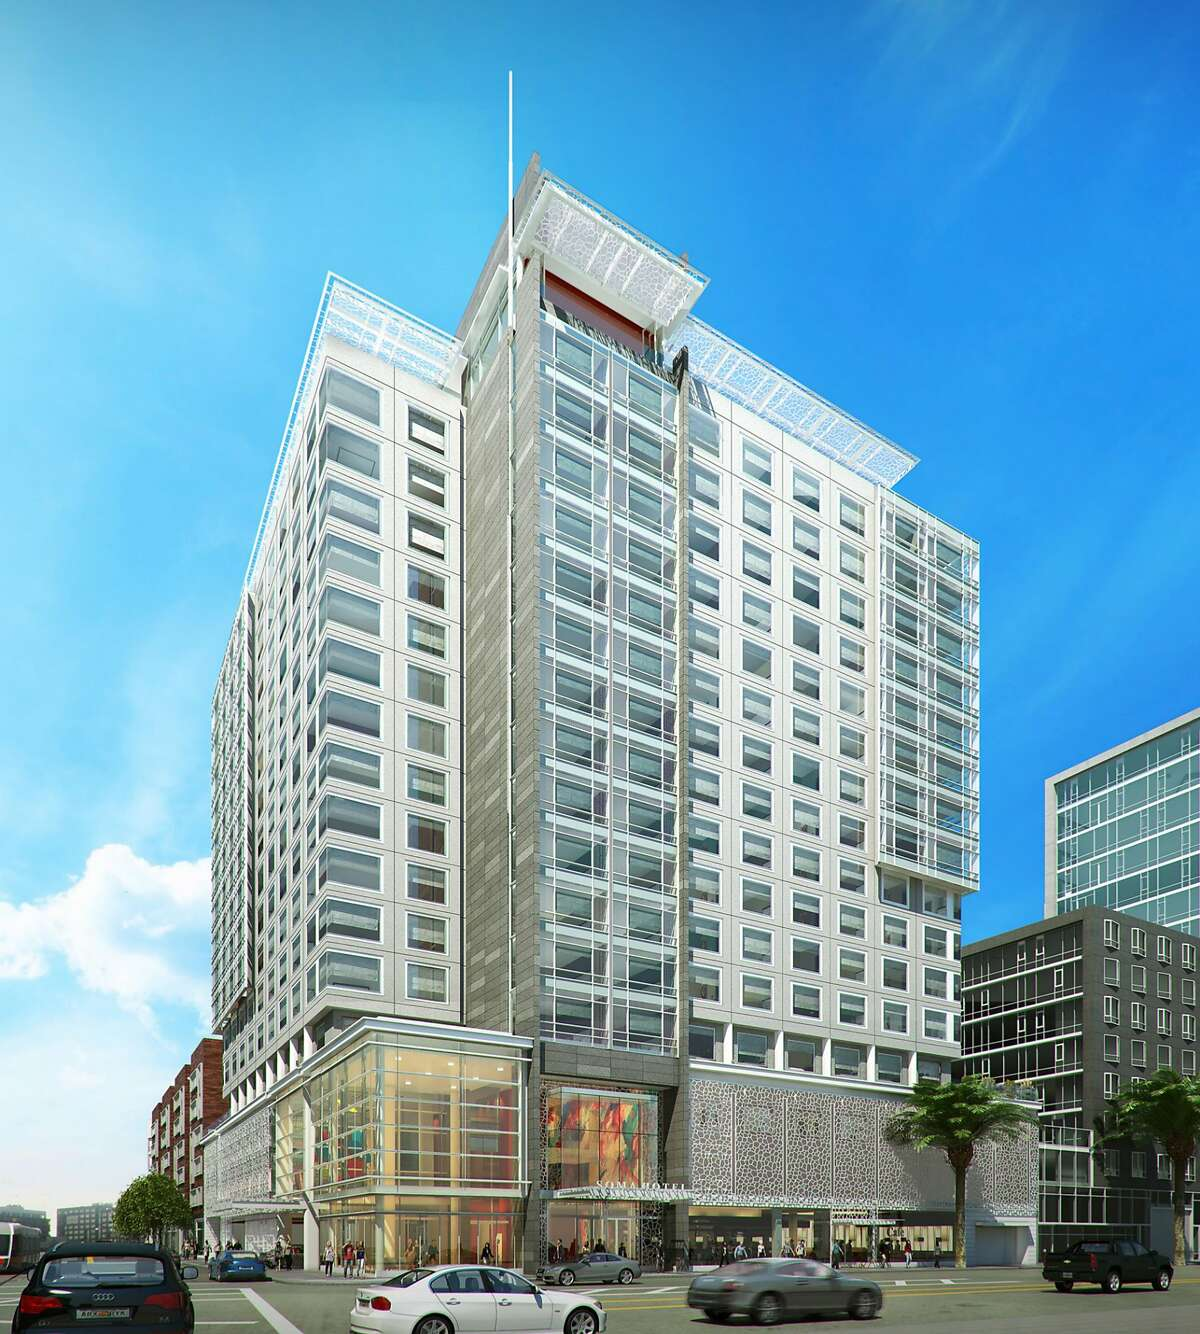 The 250-room, 17 story hotel will include a streetside caf�, and� rooftop lounge and garden.